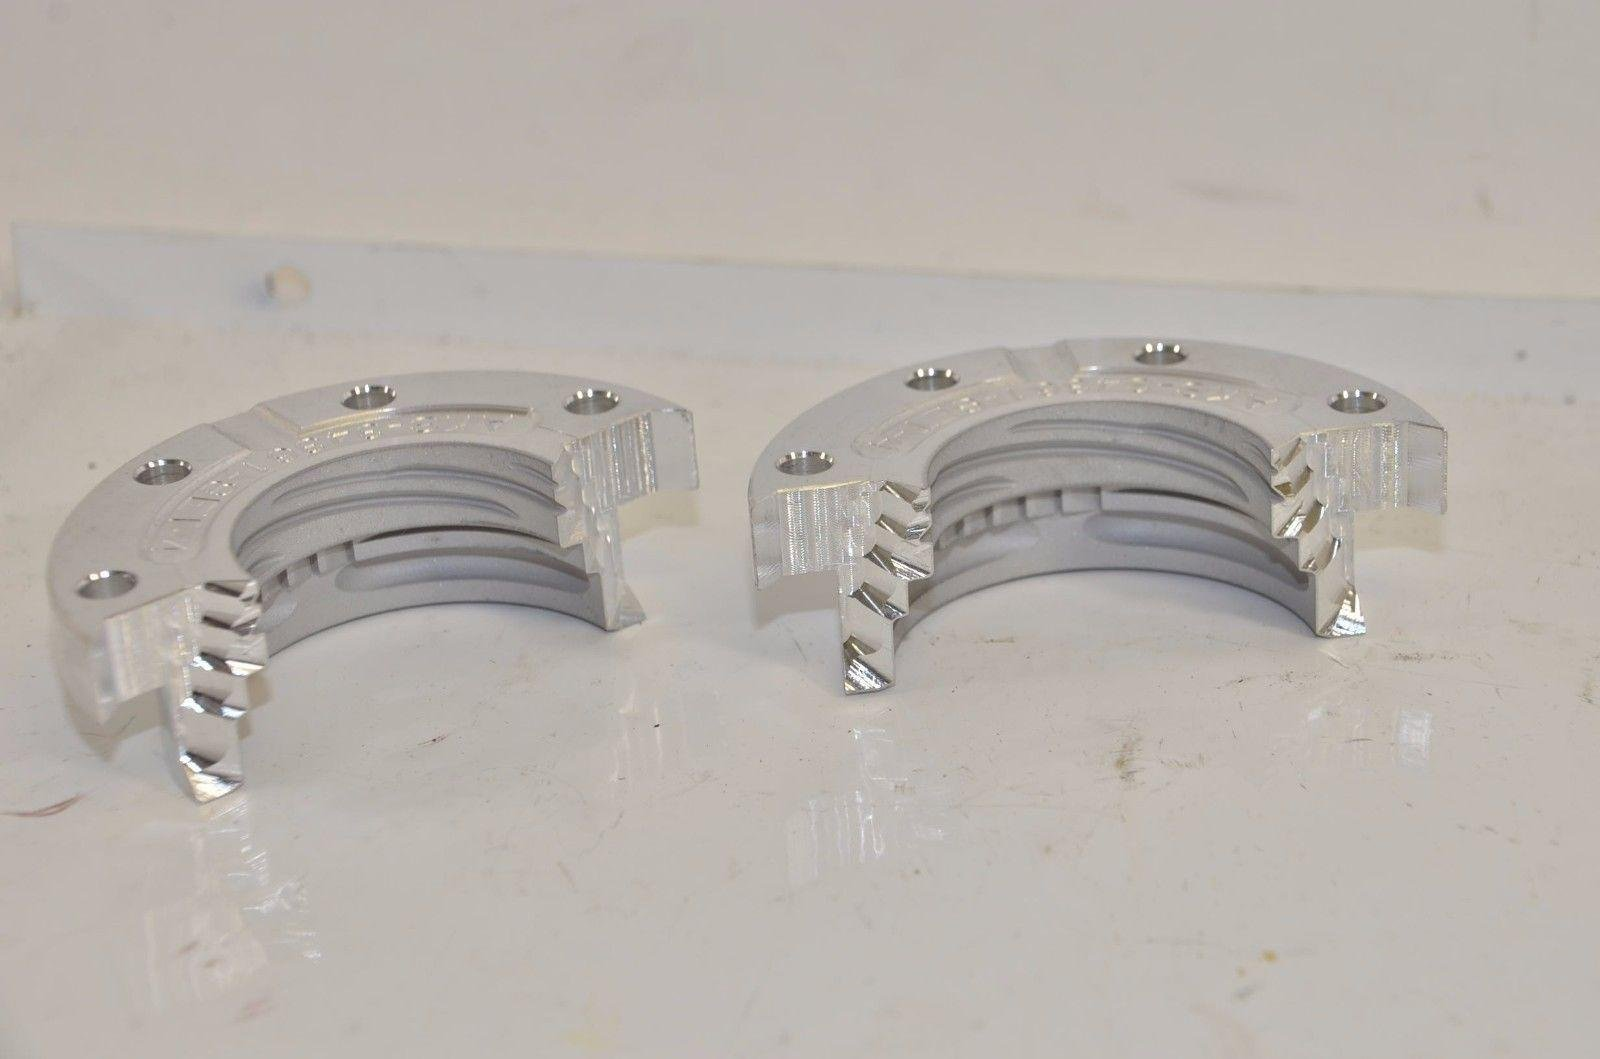 Lot of 7 AKS Aluminum Die Clamp AKS-34361 3'' OD 1-1/2'' ID 34361 by AKS (Image #3)